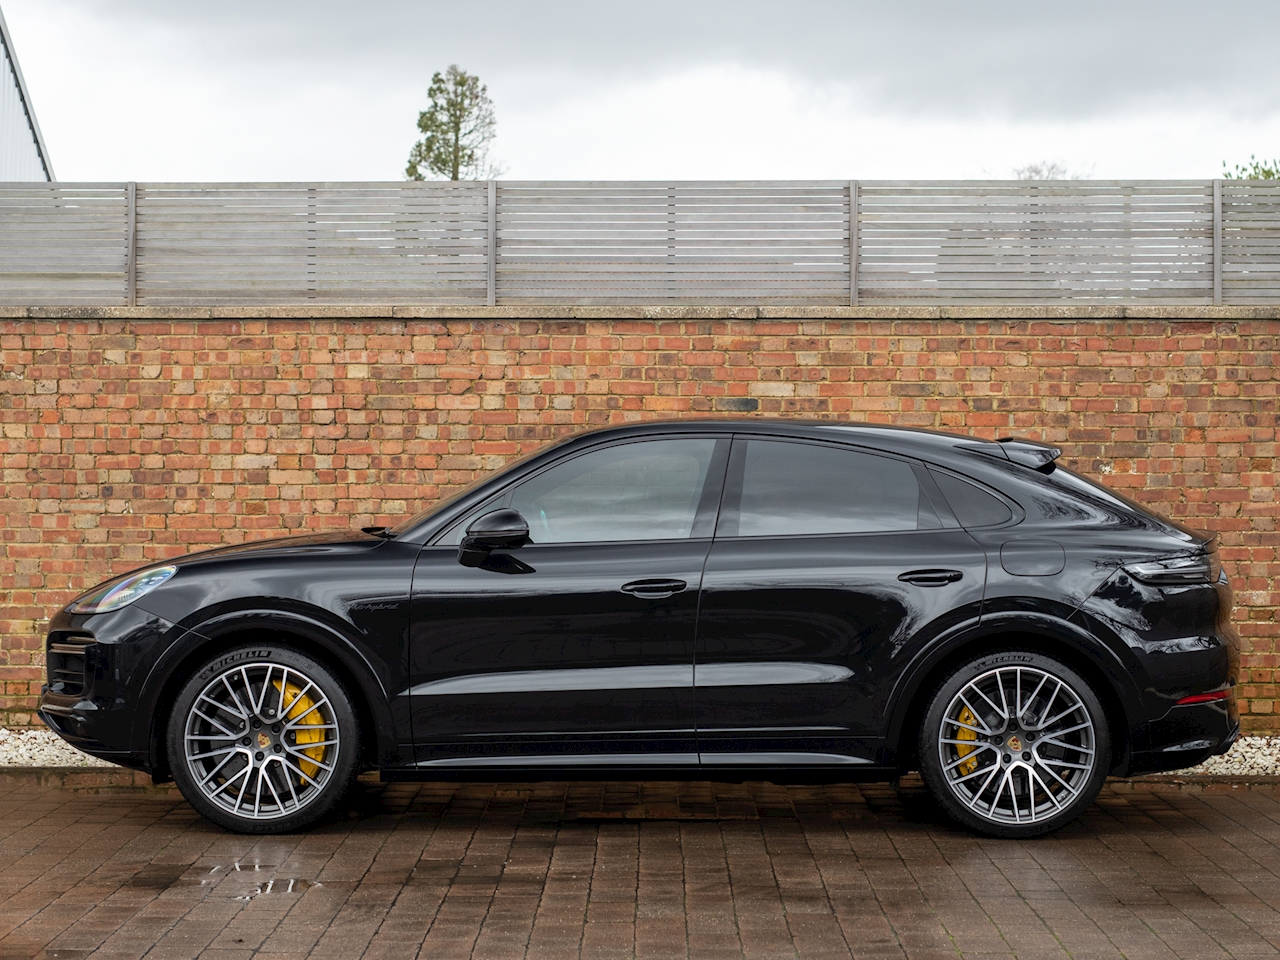 2019 Used Porsche Cayenne Turbo S E Hybrid Jet Black Metallic